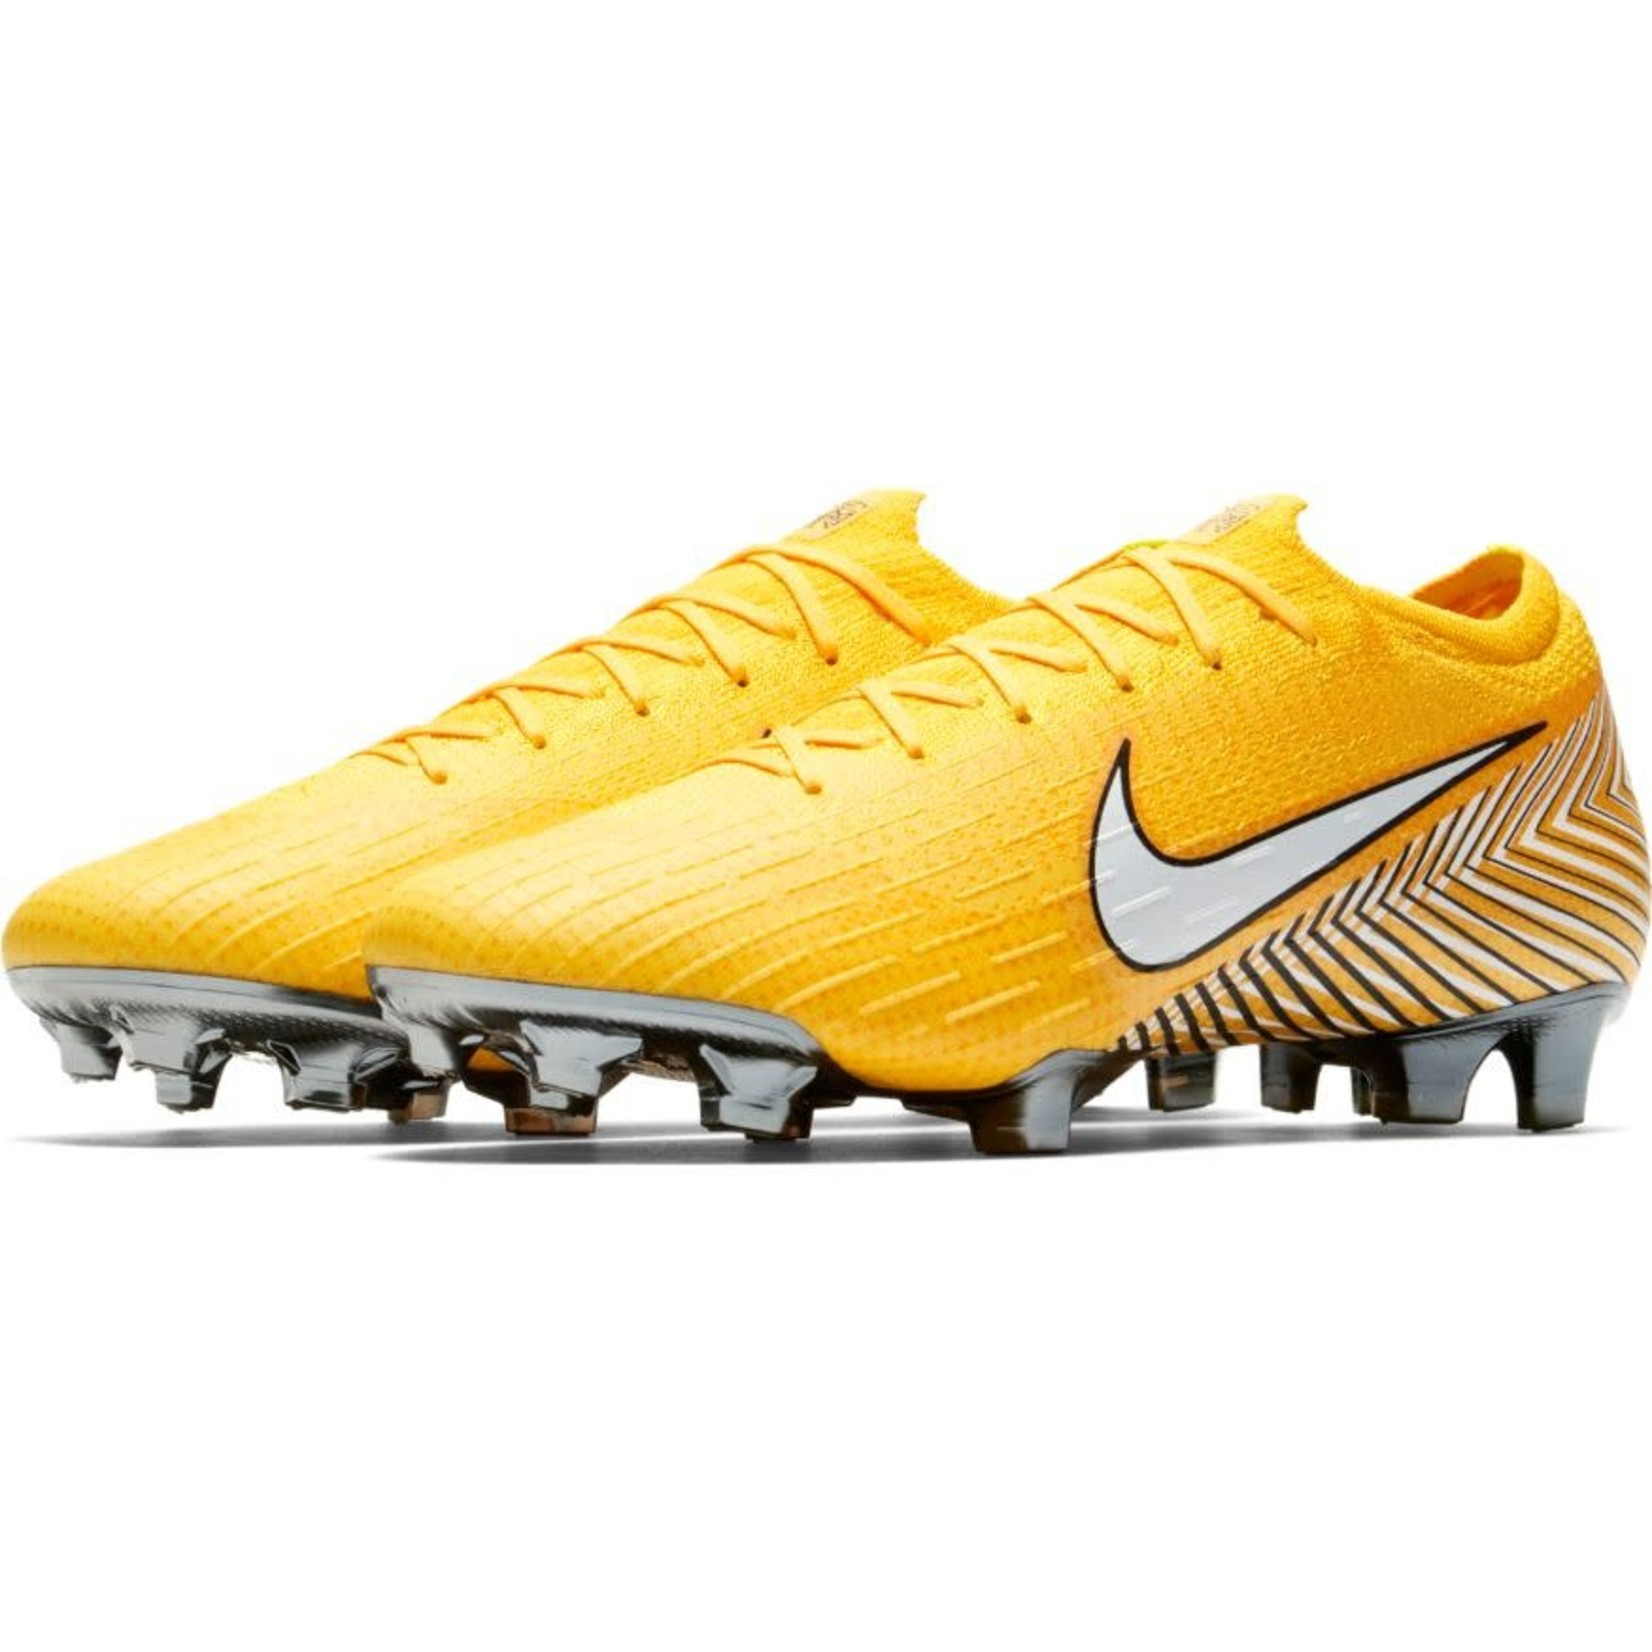 NIKE MERCURIAL VAPOR 12 ELITE NJR FG (YELLOW)